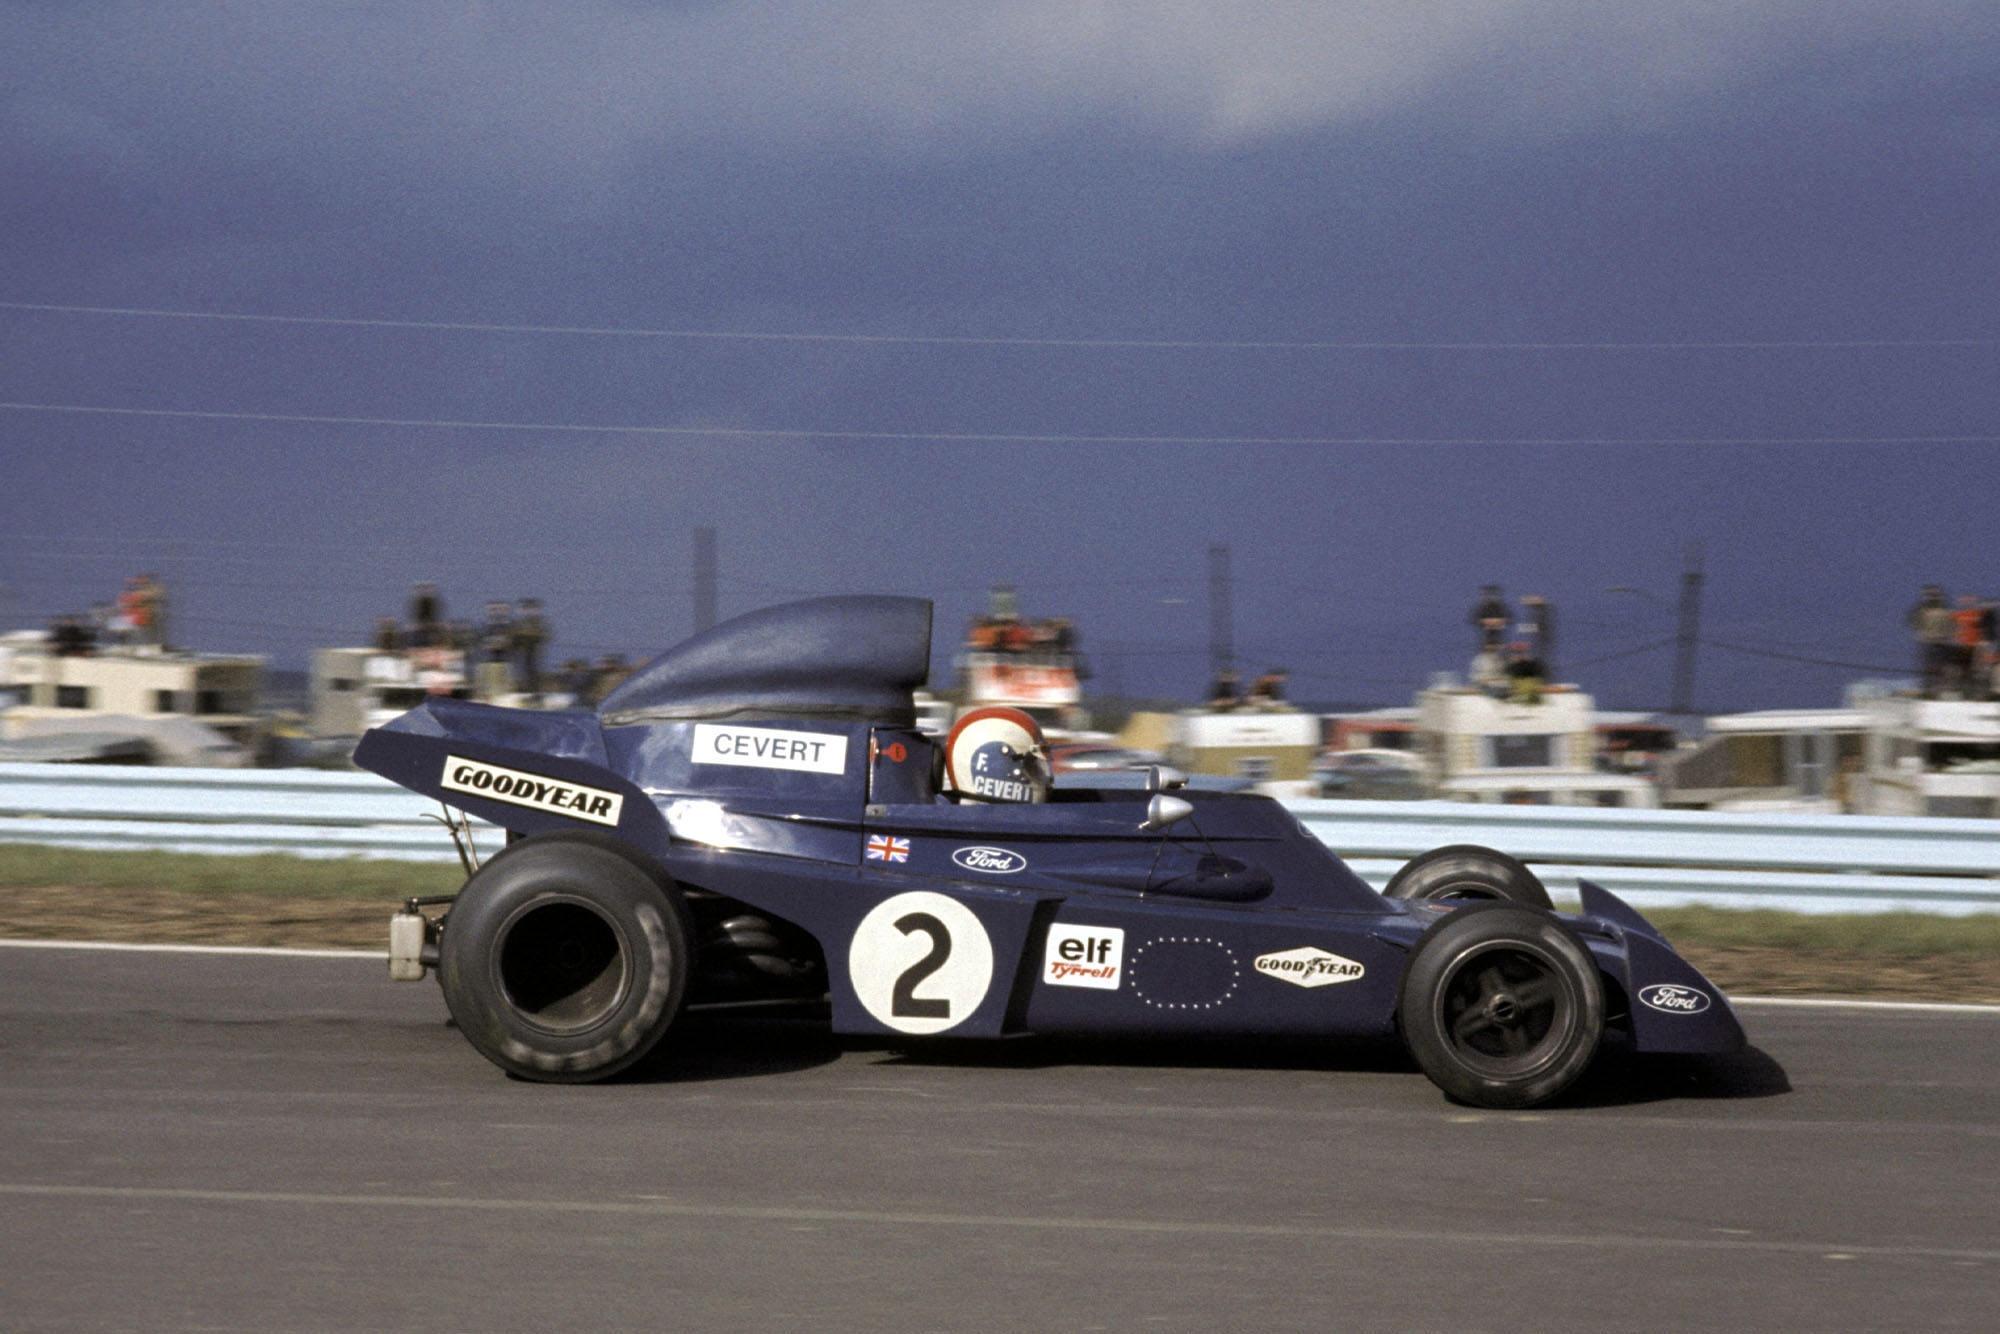 Francois Cevert driving for Tyrrell at the 972 US Grand Prix.